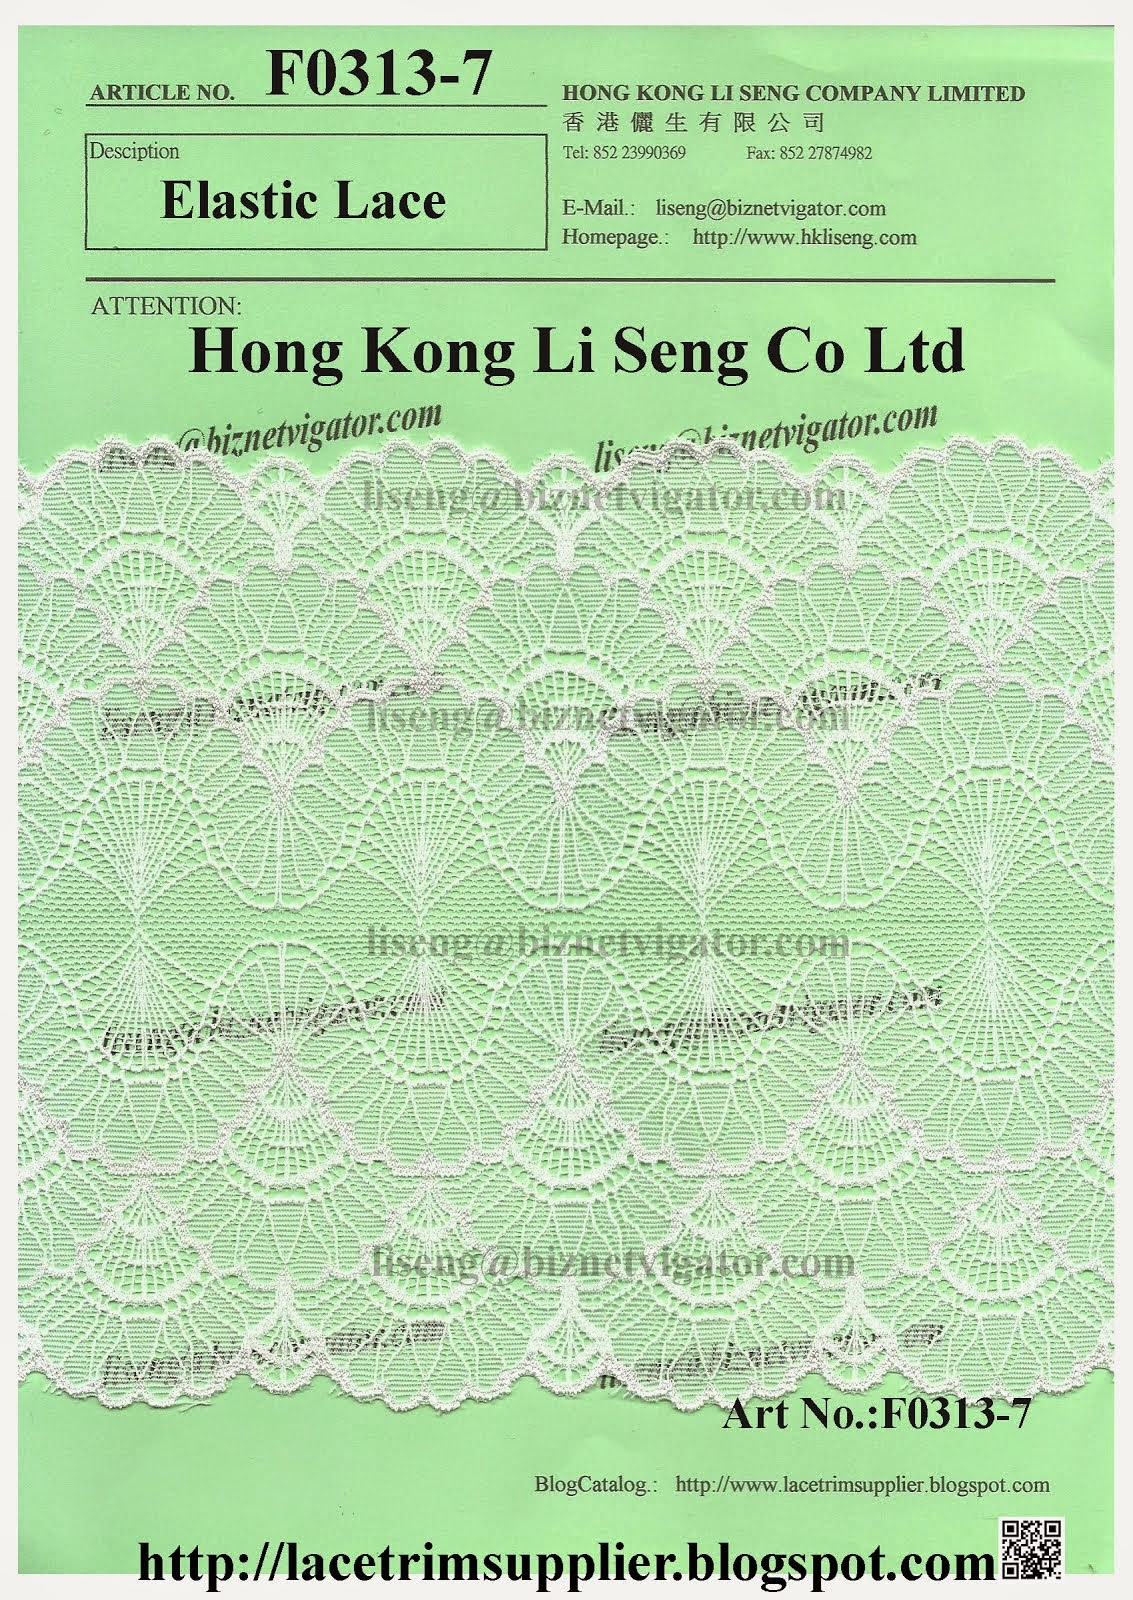 Lace Trim Factory - Hong Kong Li Seng Co Ltd